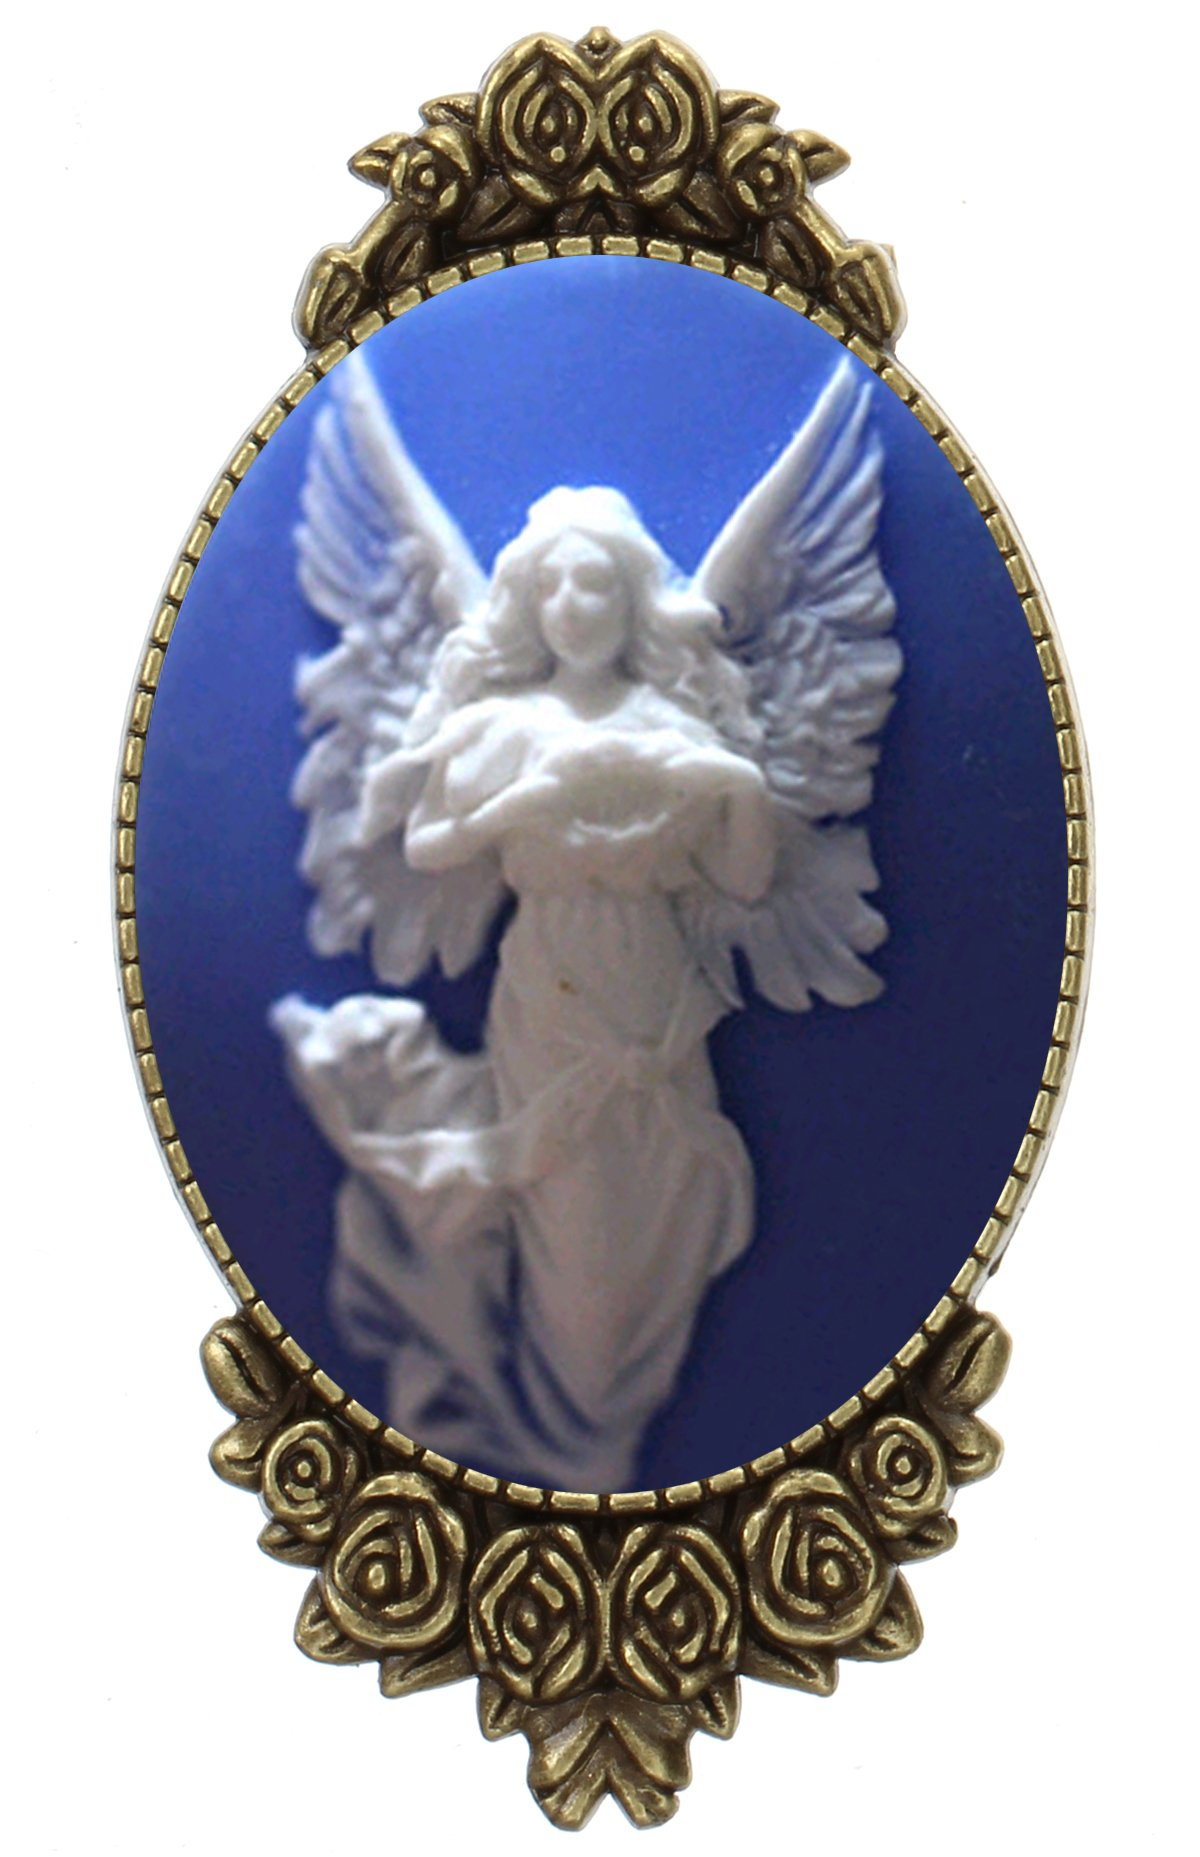 Angel Guardian Brooch Pin Rose Decor Antique Brass Fairy Fashion Jewelry Pouch for Gift